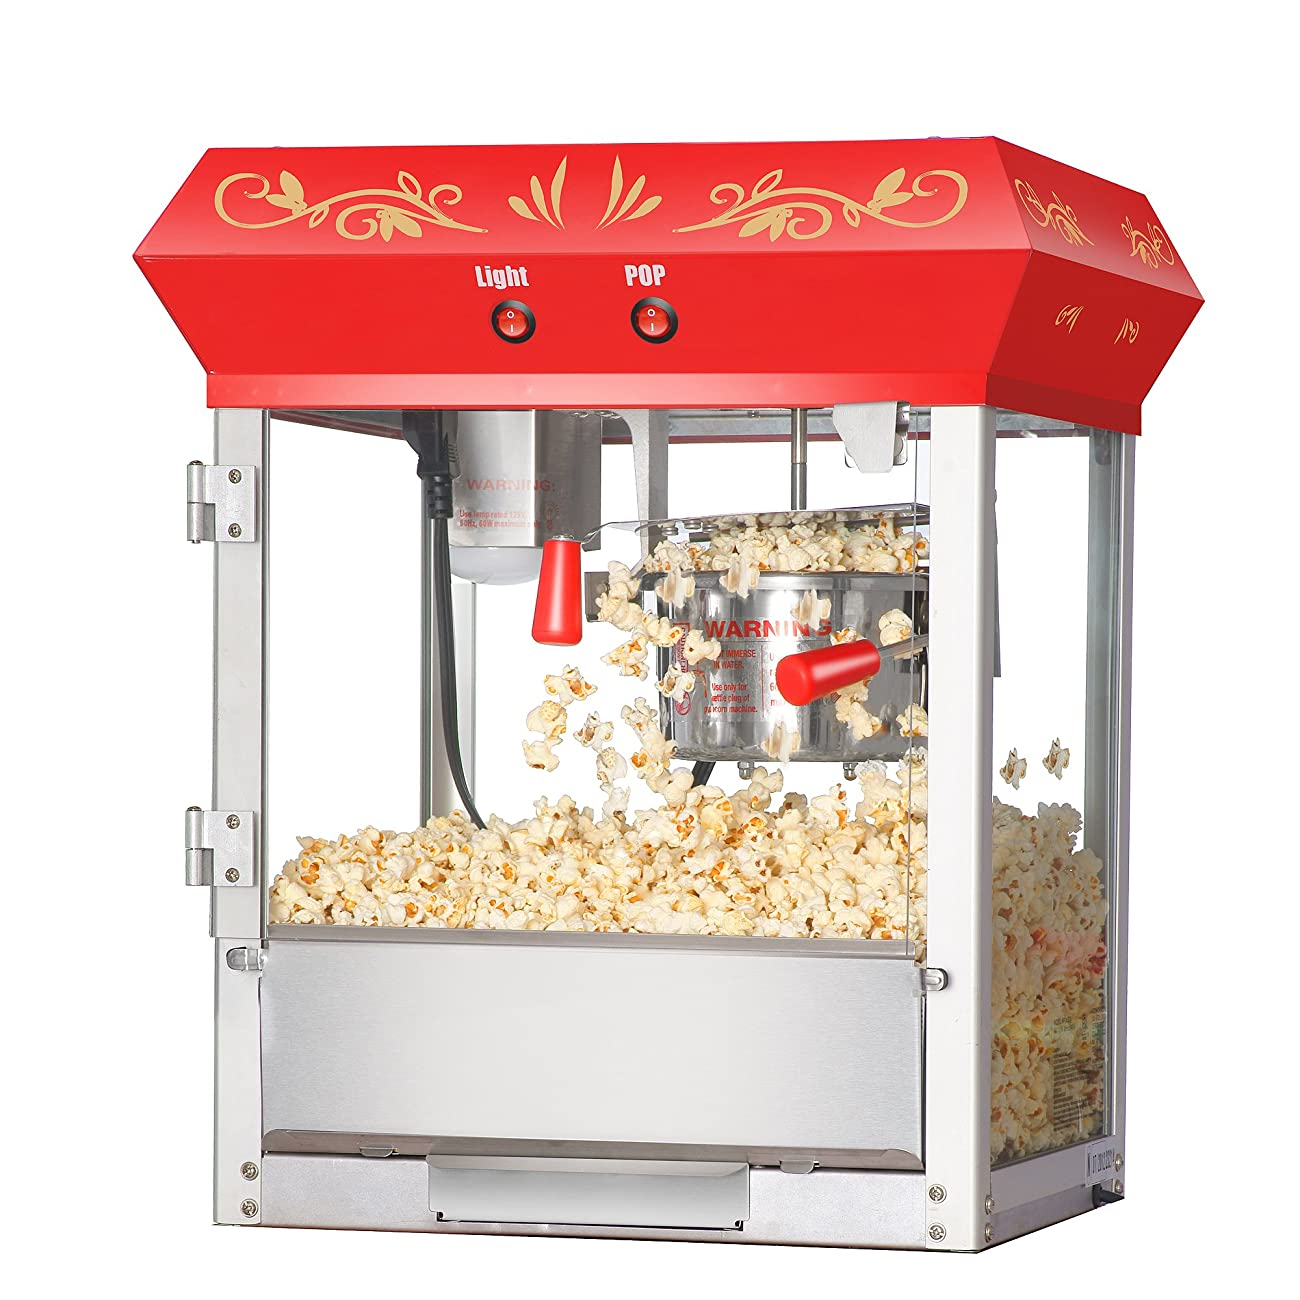 Great Northern Popcorn Red 6 oz. Ounce Foundation Vintage Style Popcorn Machine and Cart 2